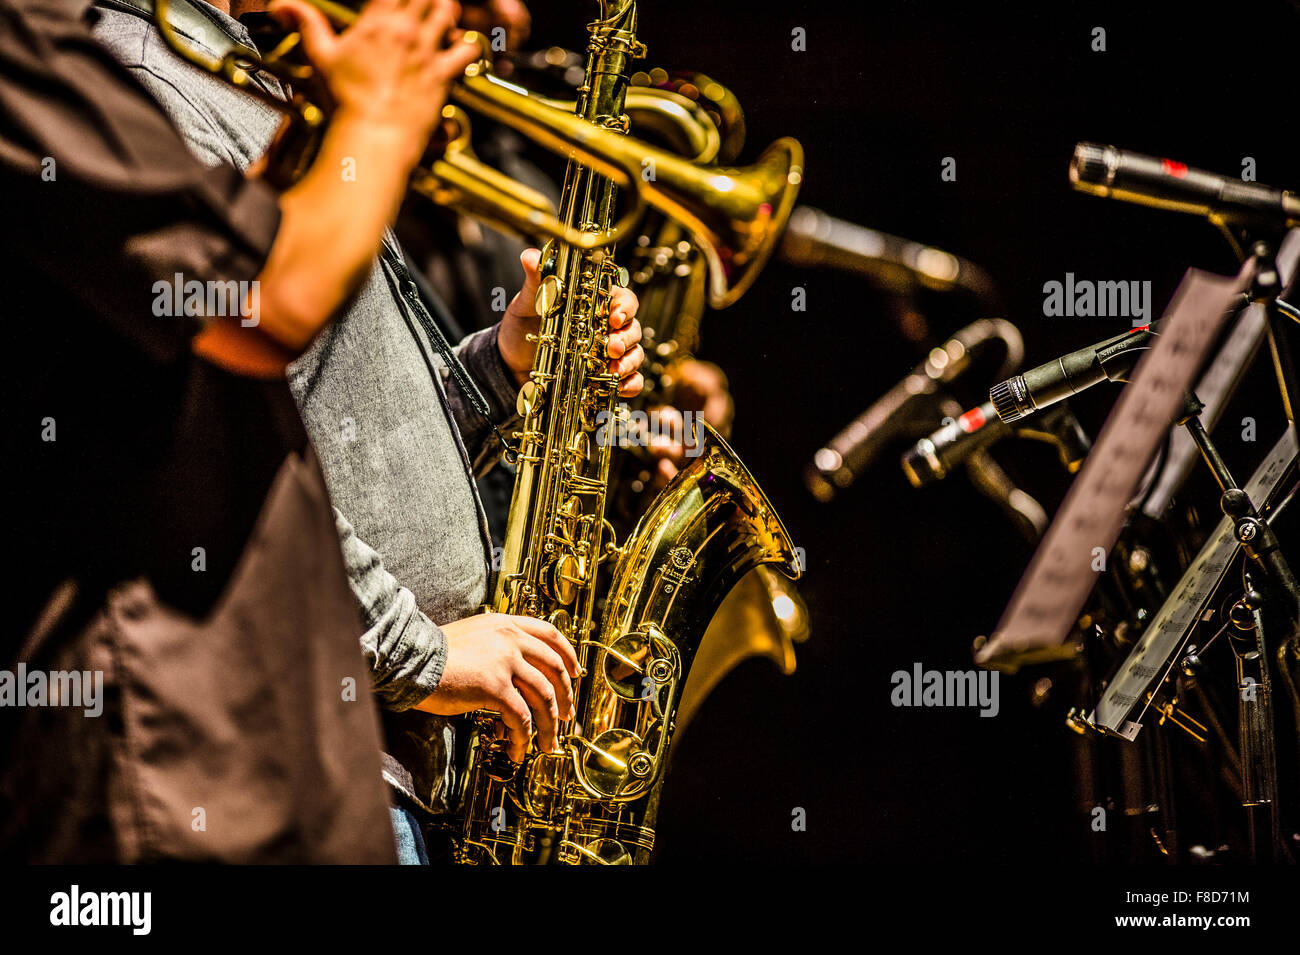 Jazz music : a musician playing a saxophone in a group - Stock Image